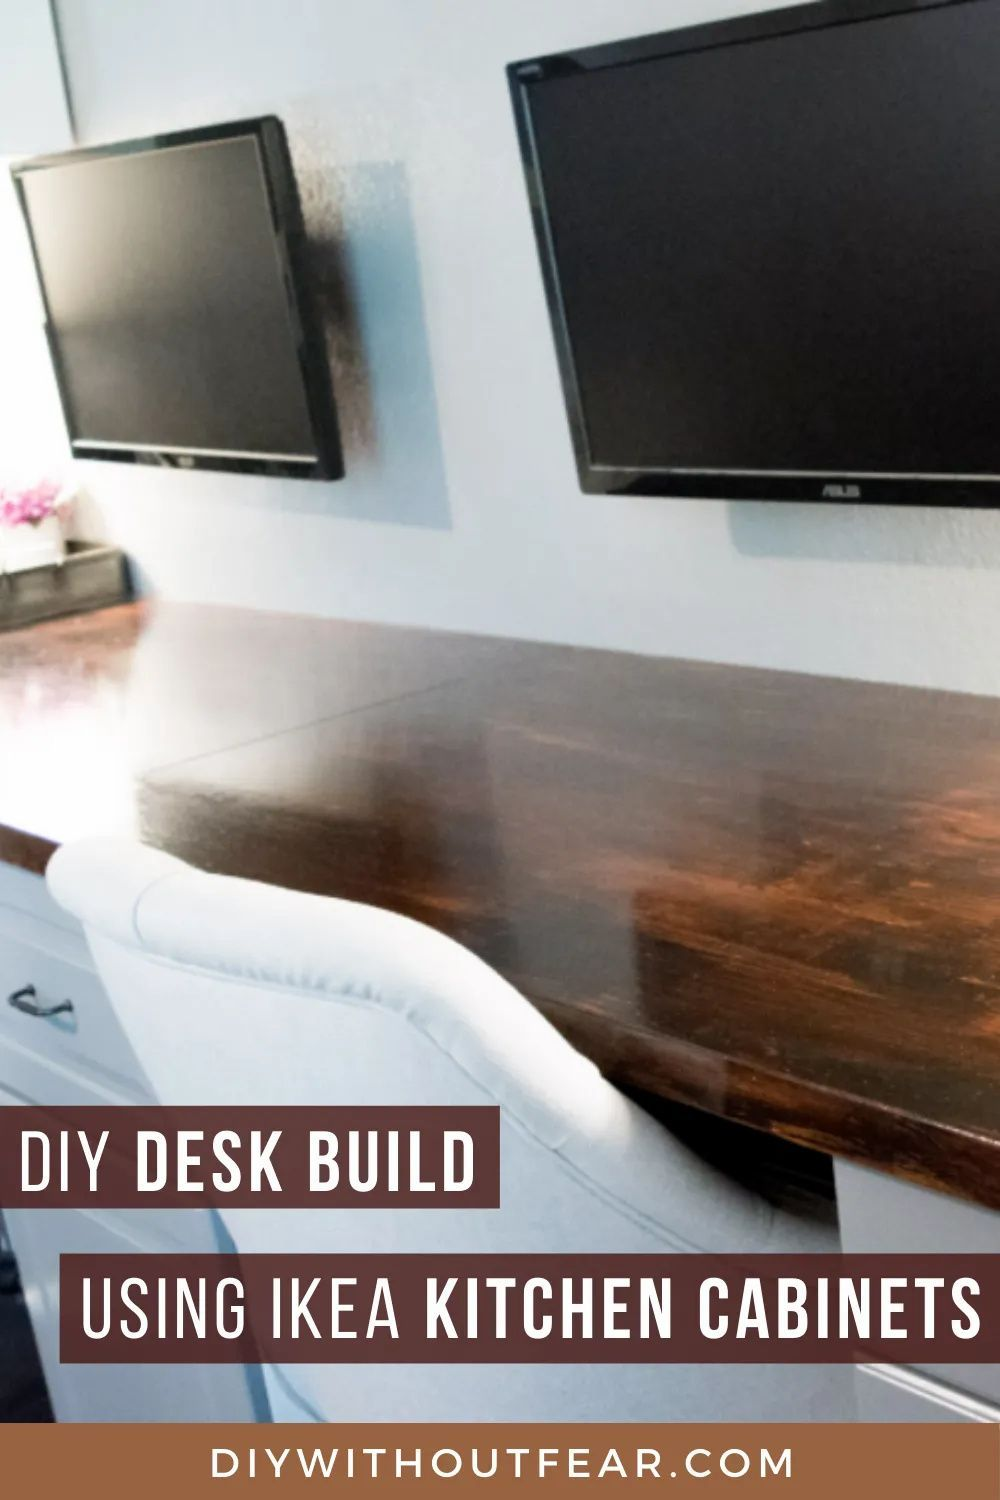 How To Make A Desk From Kitchen Cabinets Part Two Diy Without Fear In 2020 Diy Home Furniture Ikea Kitchen Diy Furniture Flip